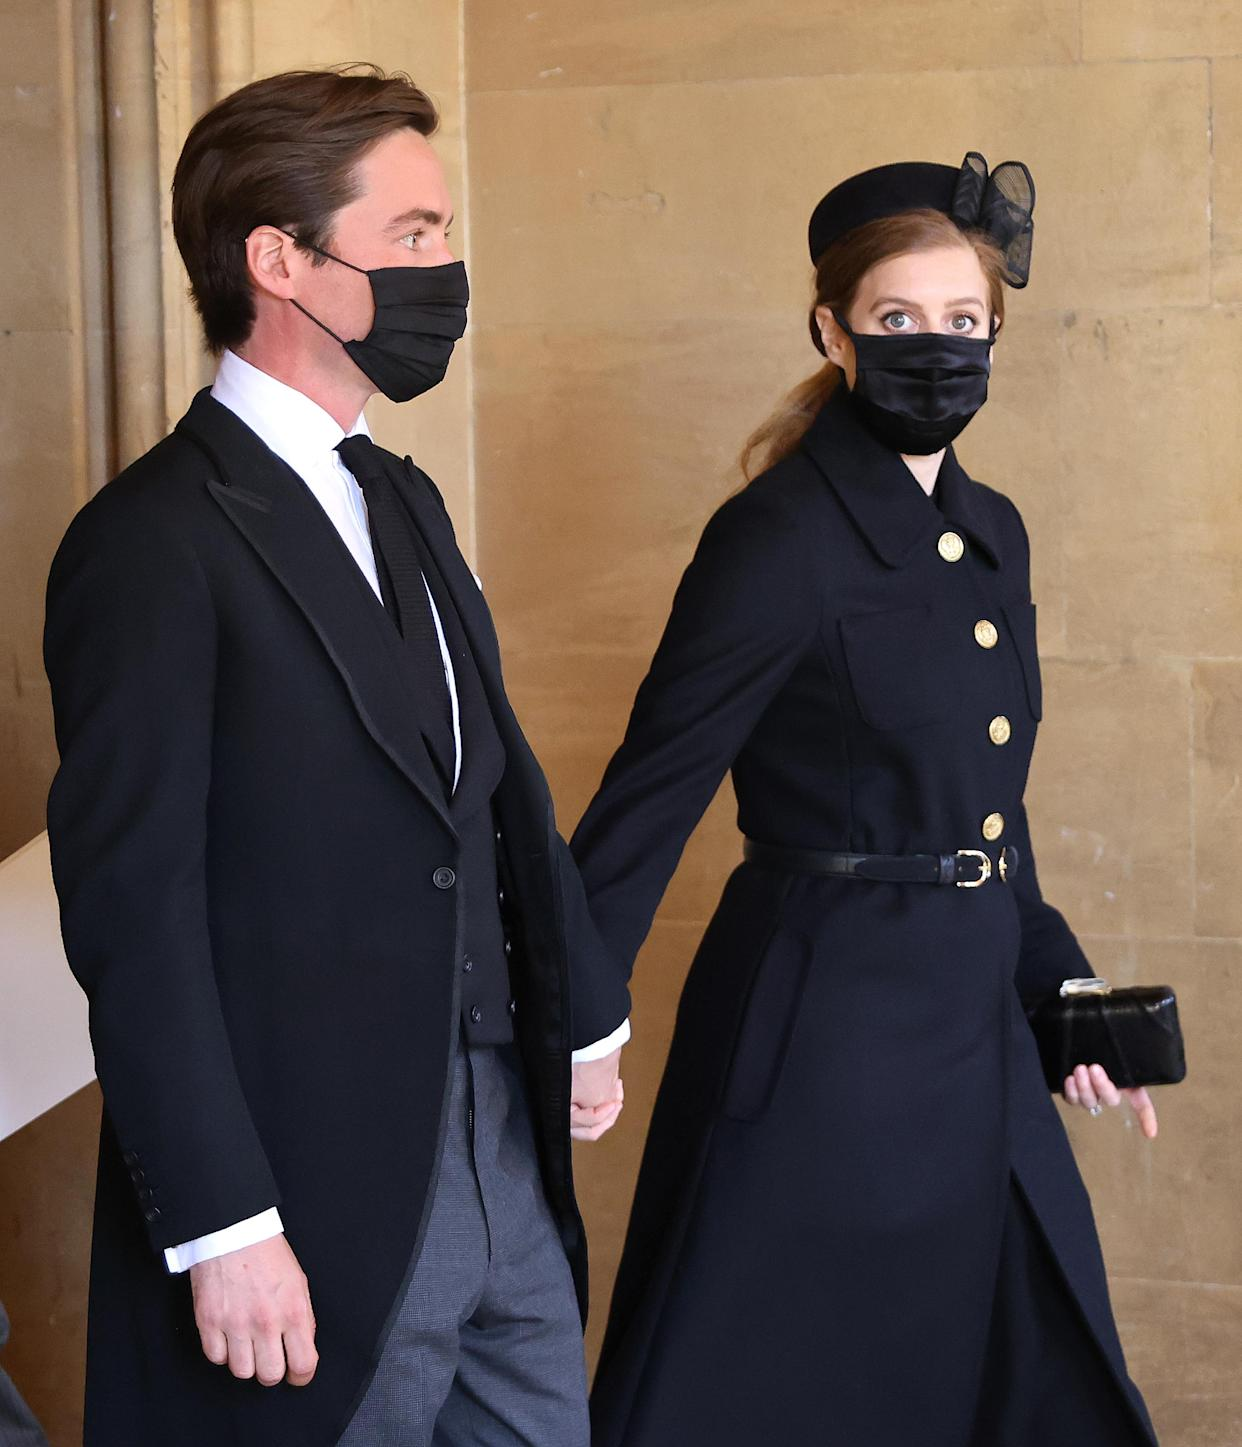 WINDSOR, ENGLAND - APRIL 17: Princess Beatrice and Edoardo Mapelli Mozzi attend the funeral of Prince Philip, Duke of Edinburgh at Windsor Castle on April 17, 2021 in Windsor, England. Prince Philip of Greece and Denmark was born 10 June 1921, in Greece. He served in the British Royal Navy and fought in WWII. He married the then Princess Elizabeth on 20 November 1947 and was created Duke of Edinburgh, Earl of Merioneth, and Baron Greenwich by King VI. He served as Prince Consort to Queen Elizabeth II until his death on April 9 2021, months short of his 100th birthday. His funeral takes place today at Windsor Castle with only 30 guests invited due to Coronavirus pandemic restrictions. (Photo by Chris Jackson/WPA Pool/Getty Images)